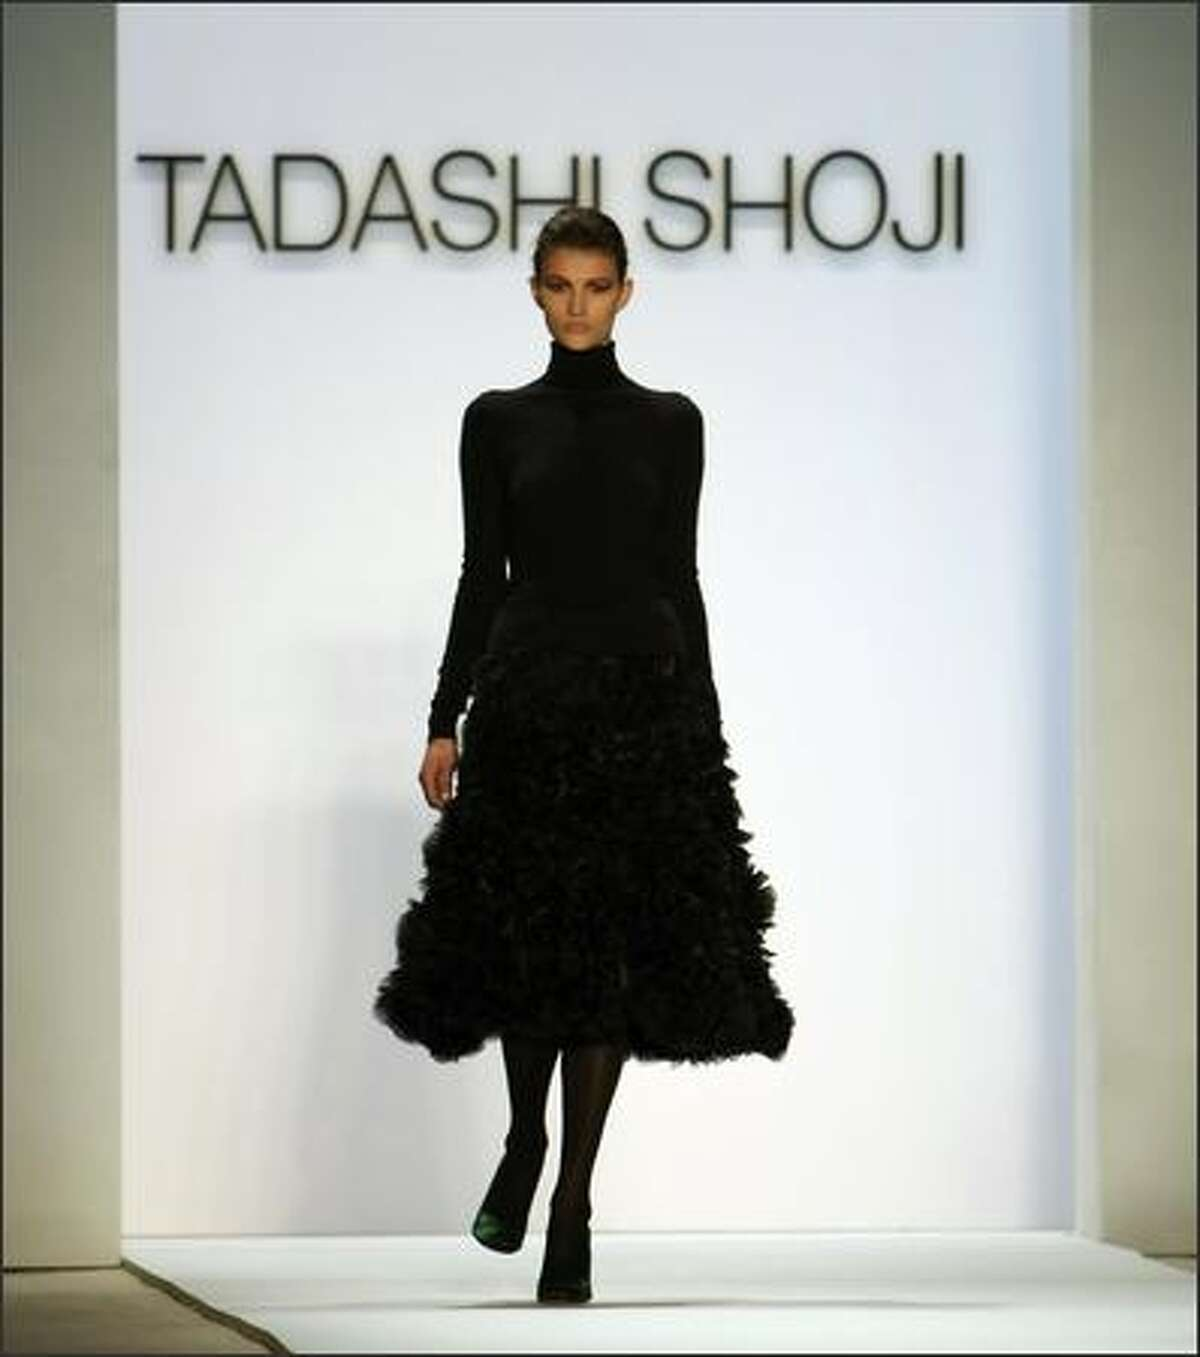 A model displays a outfit from Tadashi Shoji during the Fall 2008 fashion show during Mercedes-Benz Fashion Week Fall 2008 at The Promenade at Bryant Park in New York City.